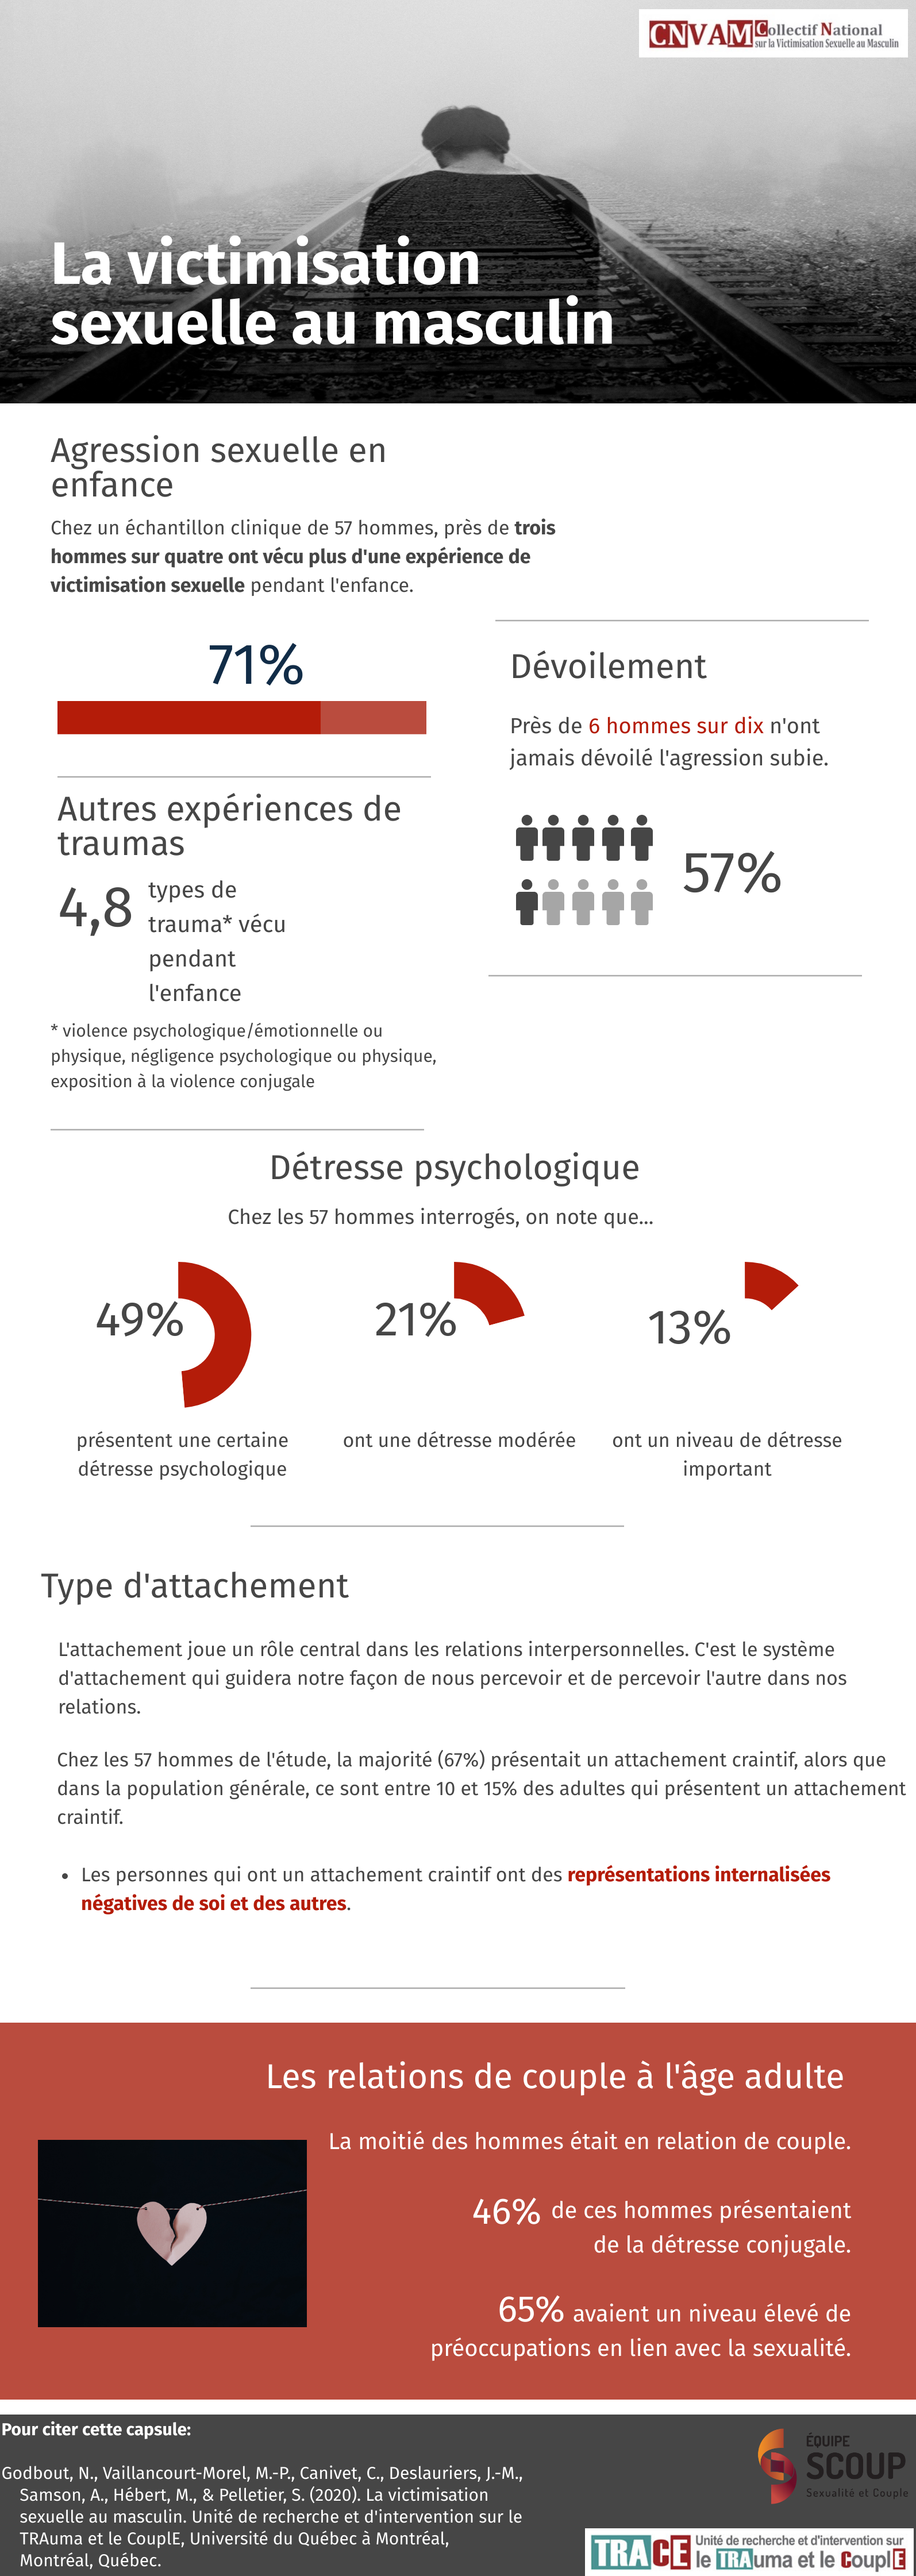 Infographie Victimisation au masculin FINAL